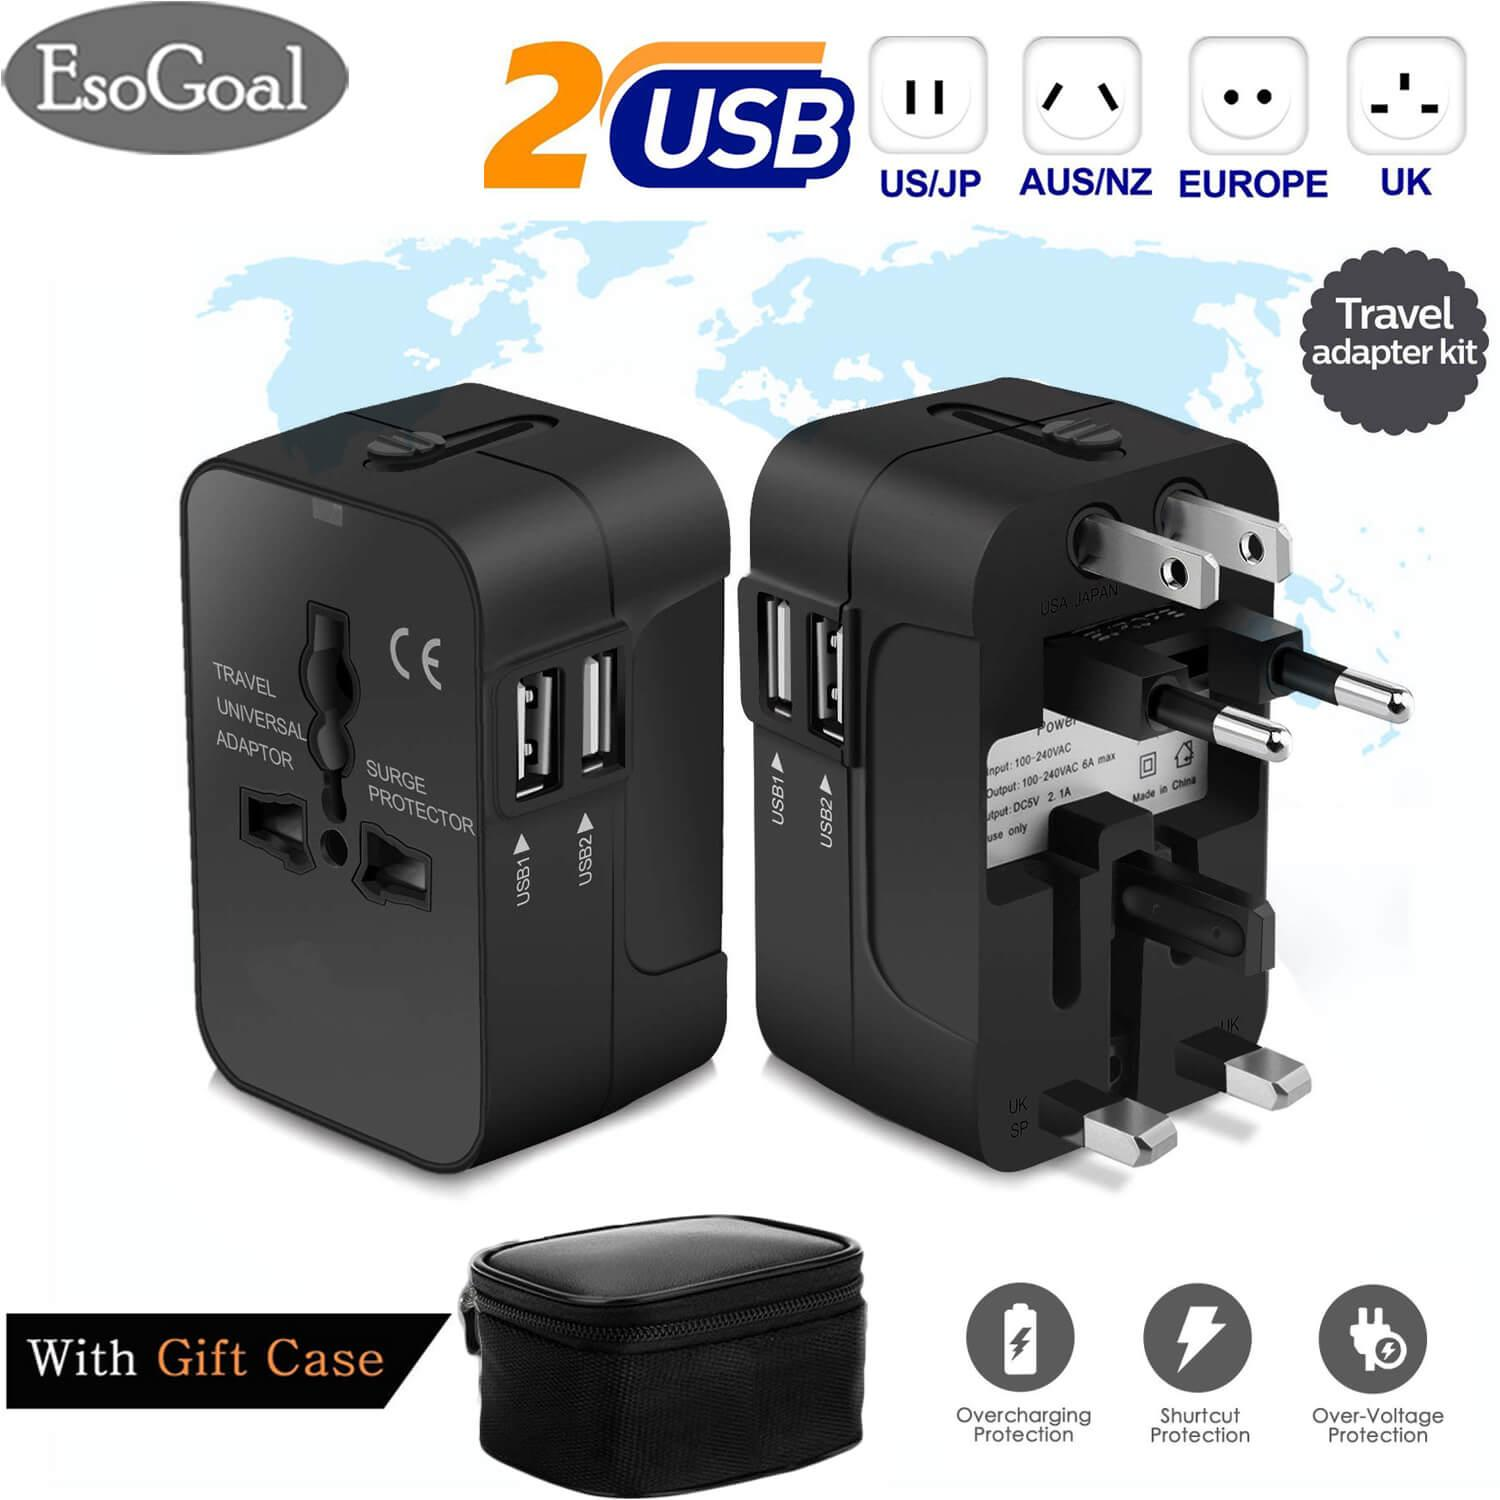 Esogoal Adapter Konverter Travel Adapters Converters, All In One International Universal Multi-Outlets Wall Power Travel Adaptor With 2 Usb Charging Ports Uk/usa/eu/aus Worldwide Converter Plug Charger For Laptops,phones,tablets And More By Esogoal